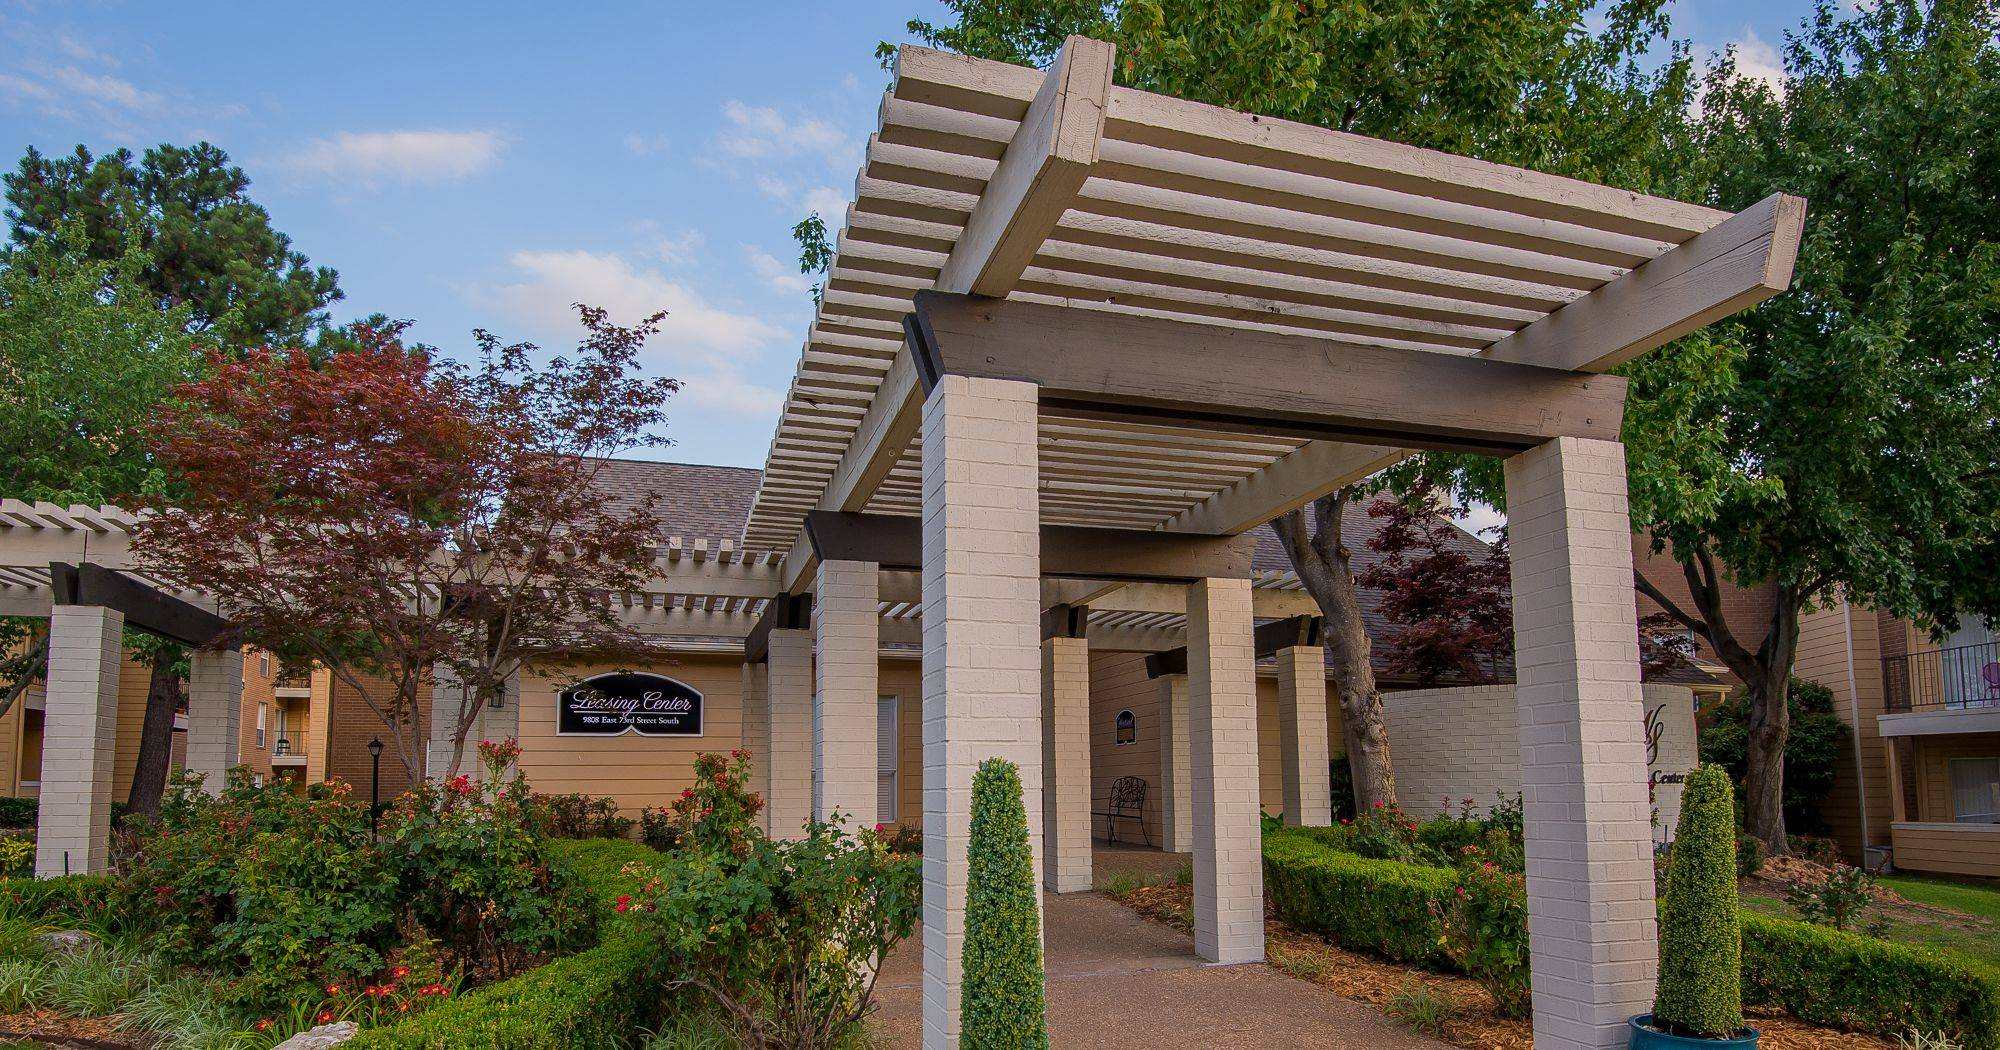 The entrance to apartments at Windsail Apartments